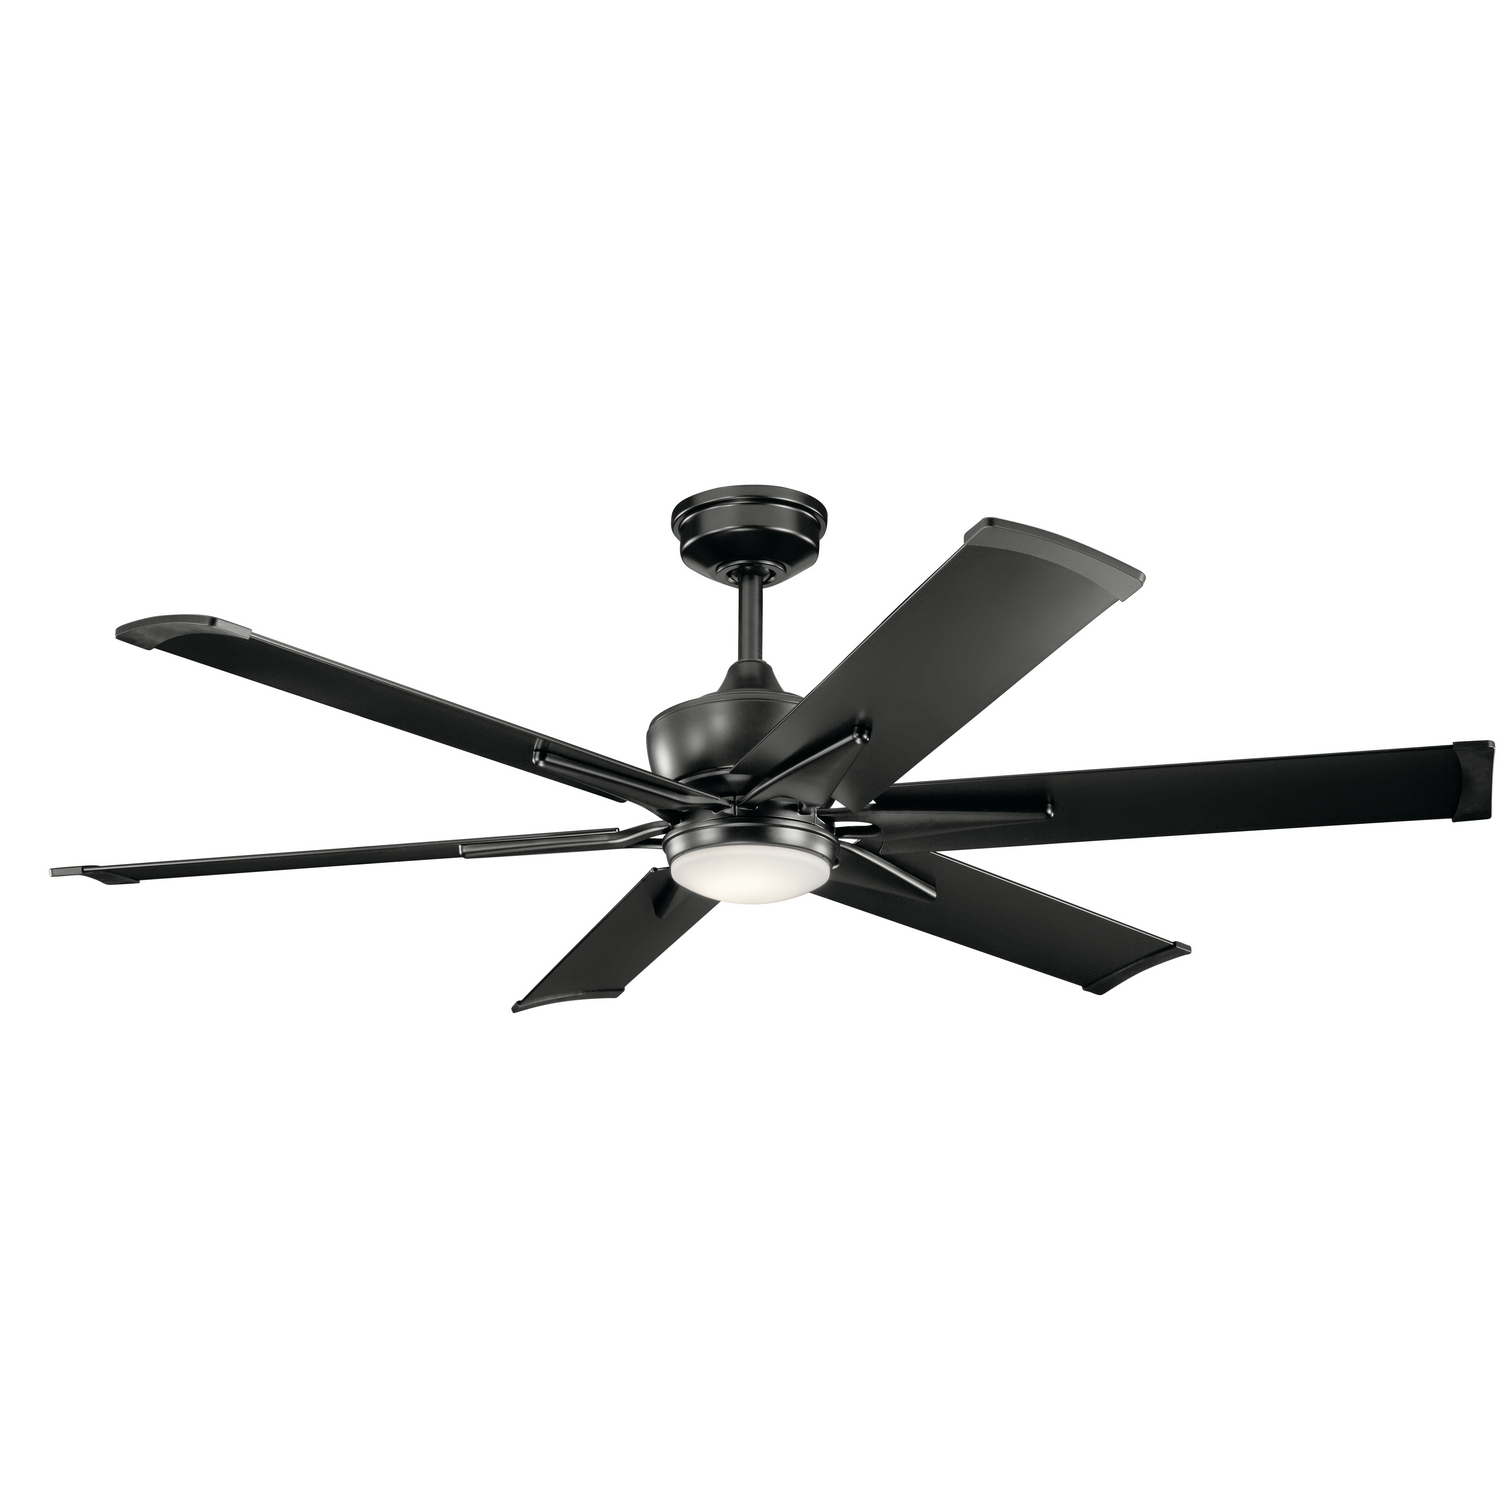 60 inchCeiling Fan from the Szeplo Patio collection by Kichler 300300SBK